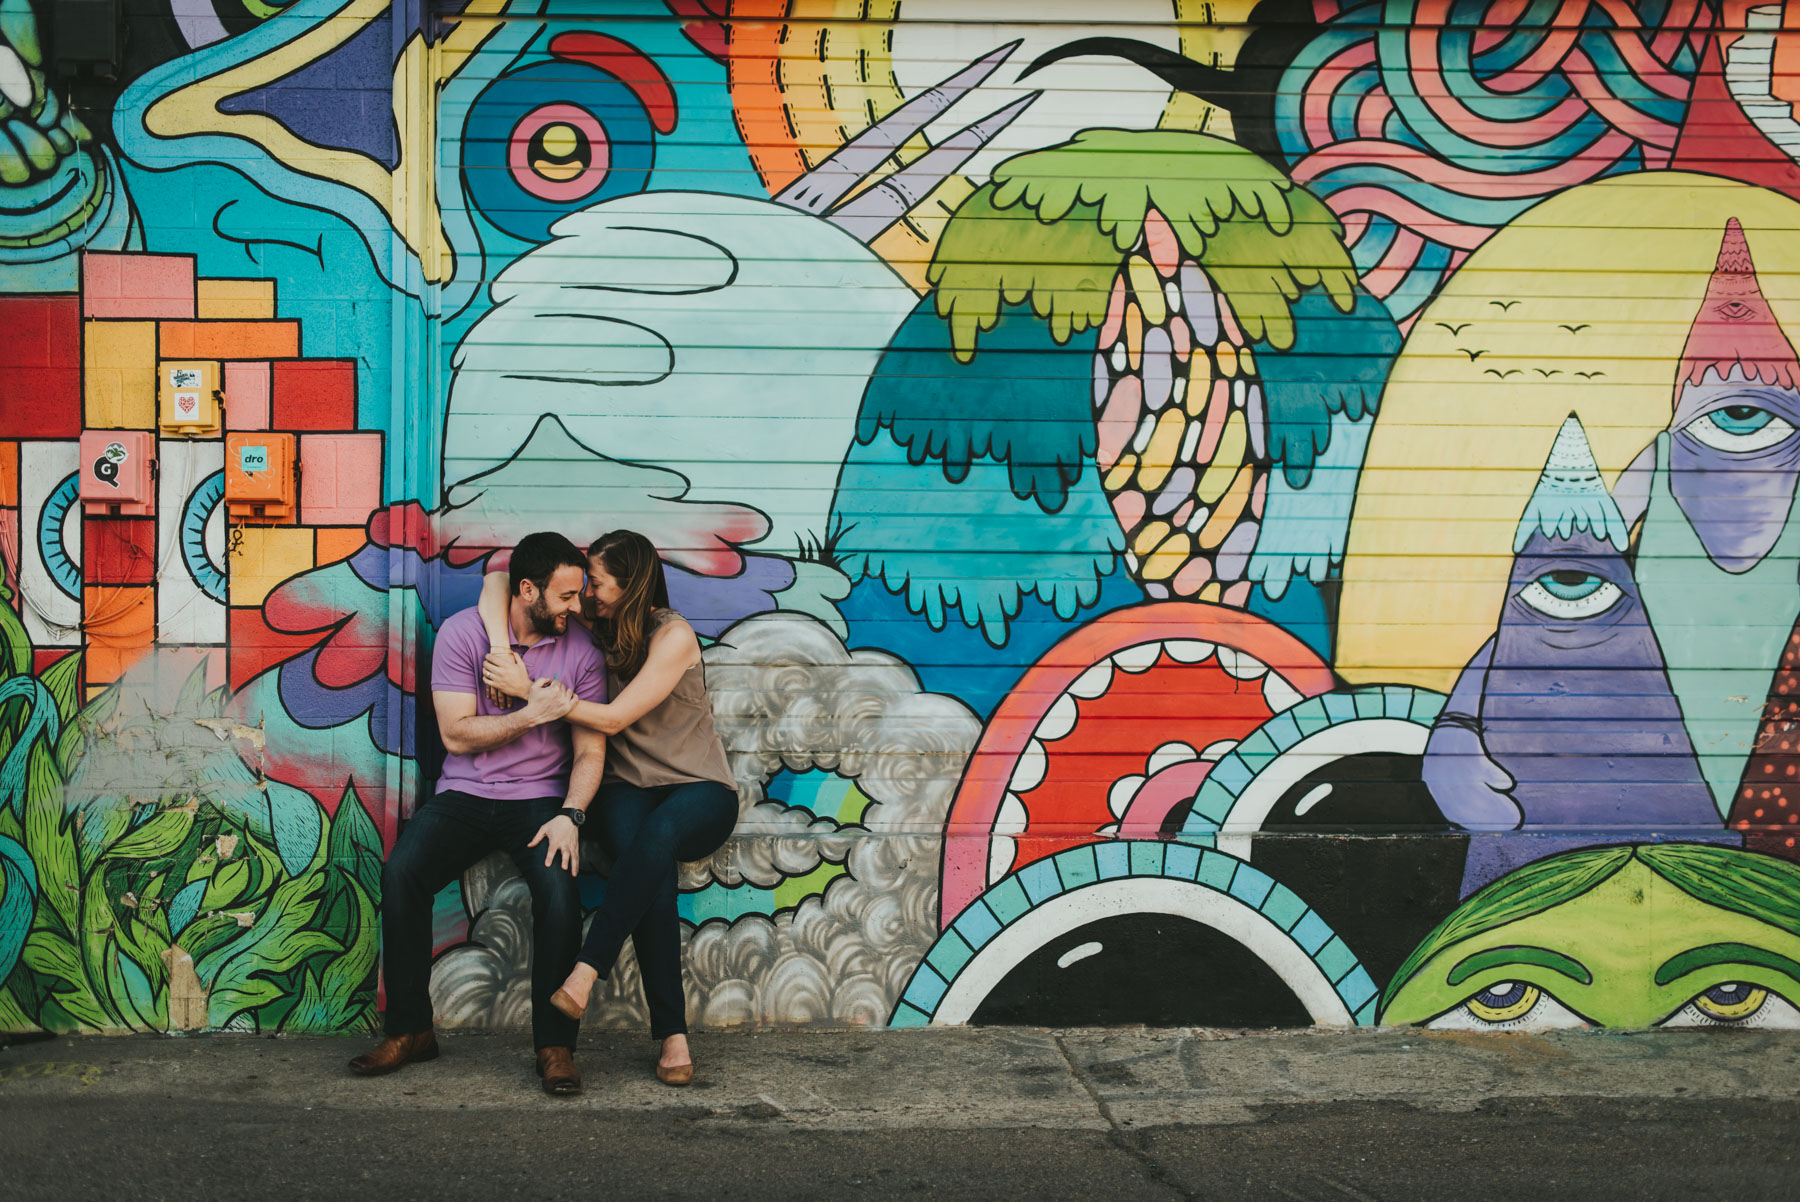 Geoff and Lindsey had their engagement session in the RiNo district in Denver, Colorado. Rino is an awesome spot for couples portraits because of the beautiful, colorful murals located between Larimer and Walnut Street.